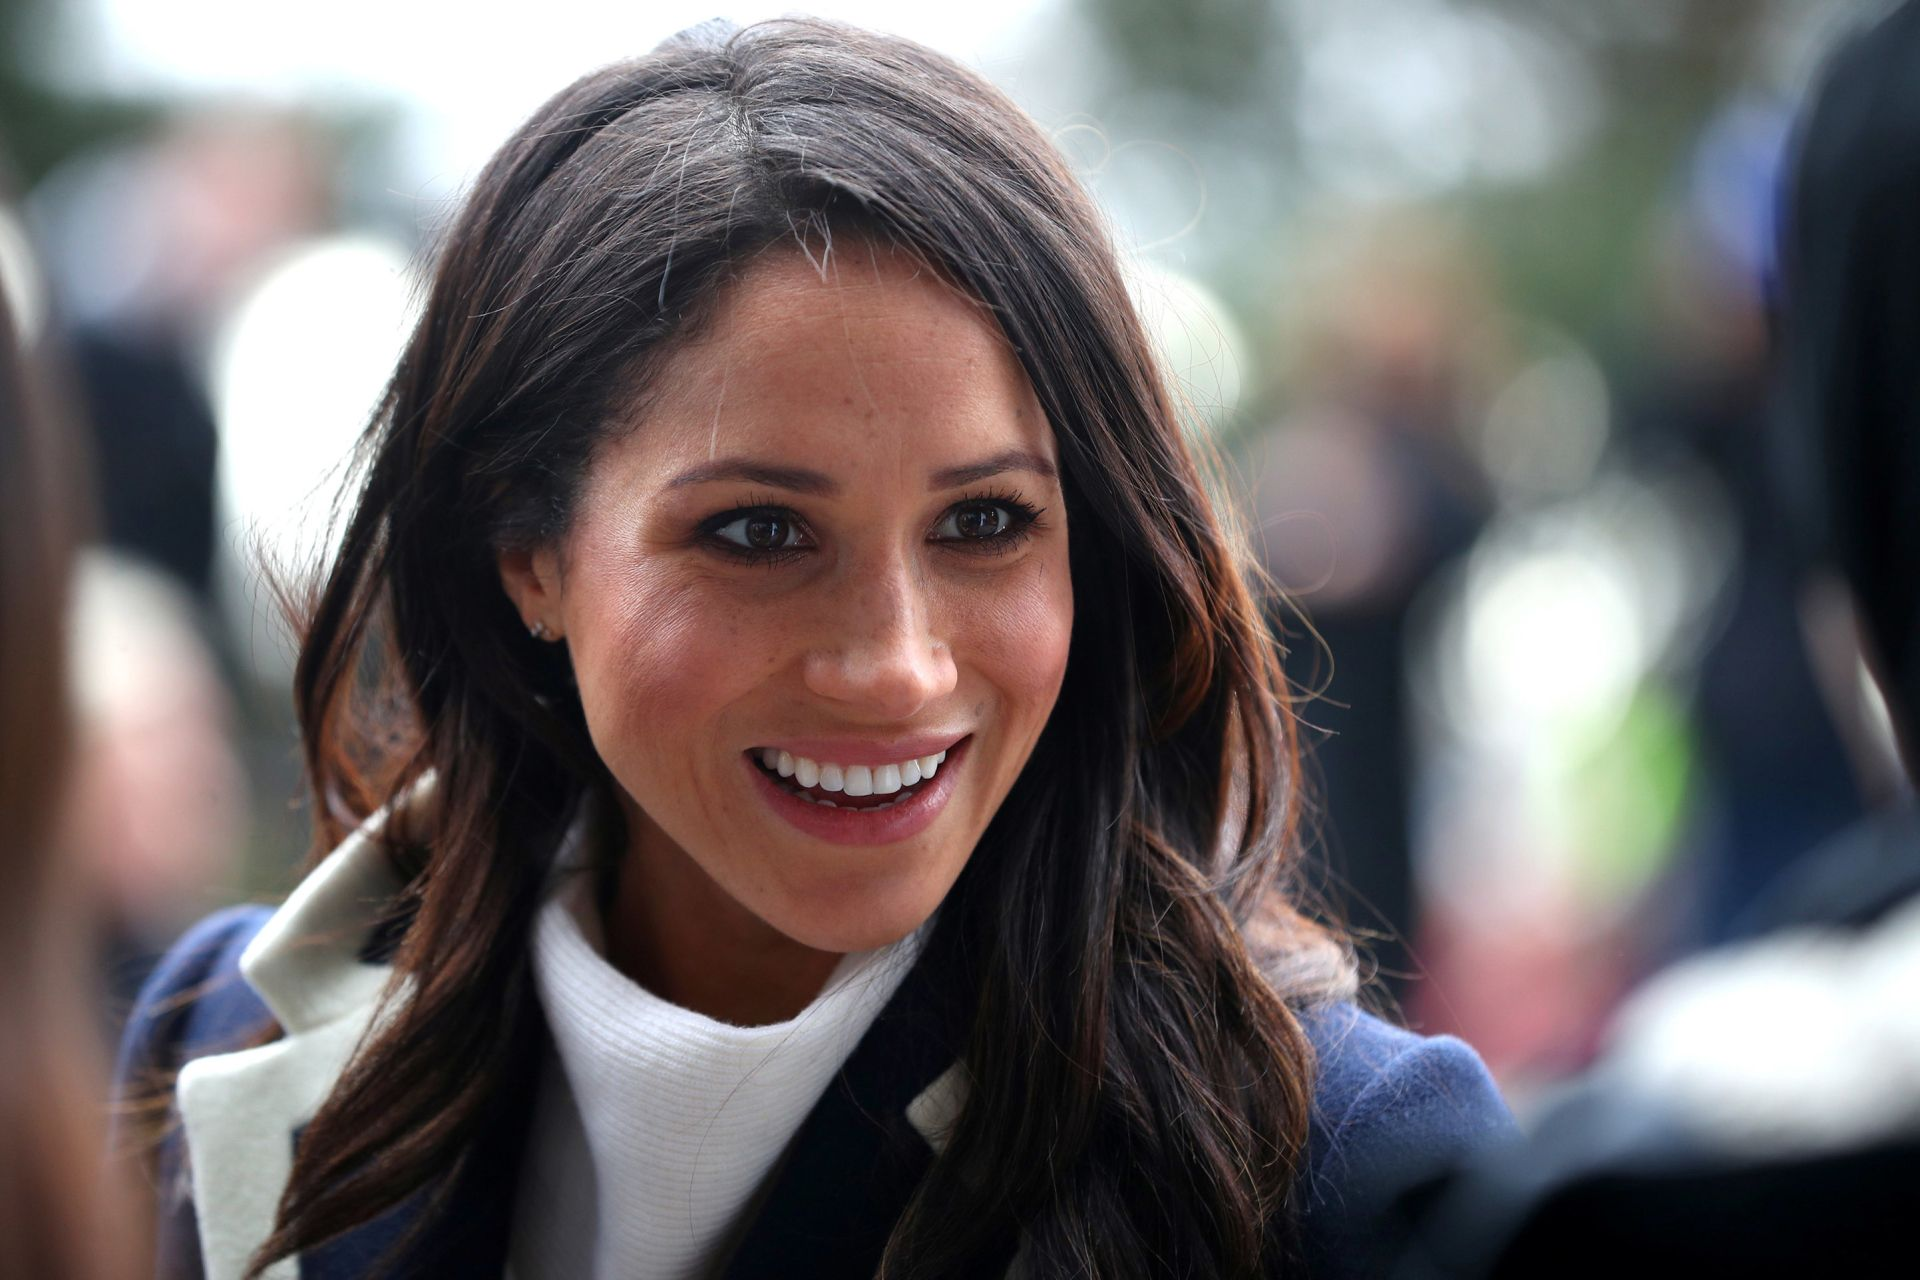 What We Know About Meghan Markle's Super Secret Baby Shower